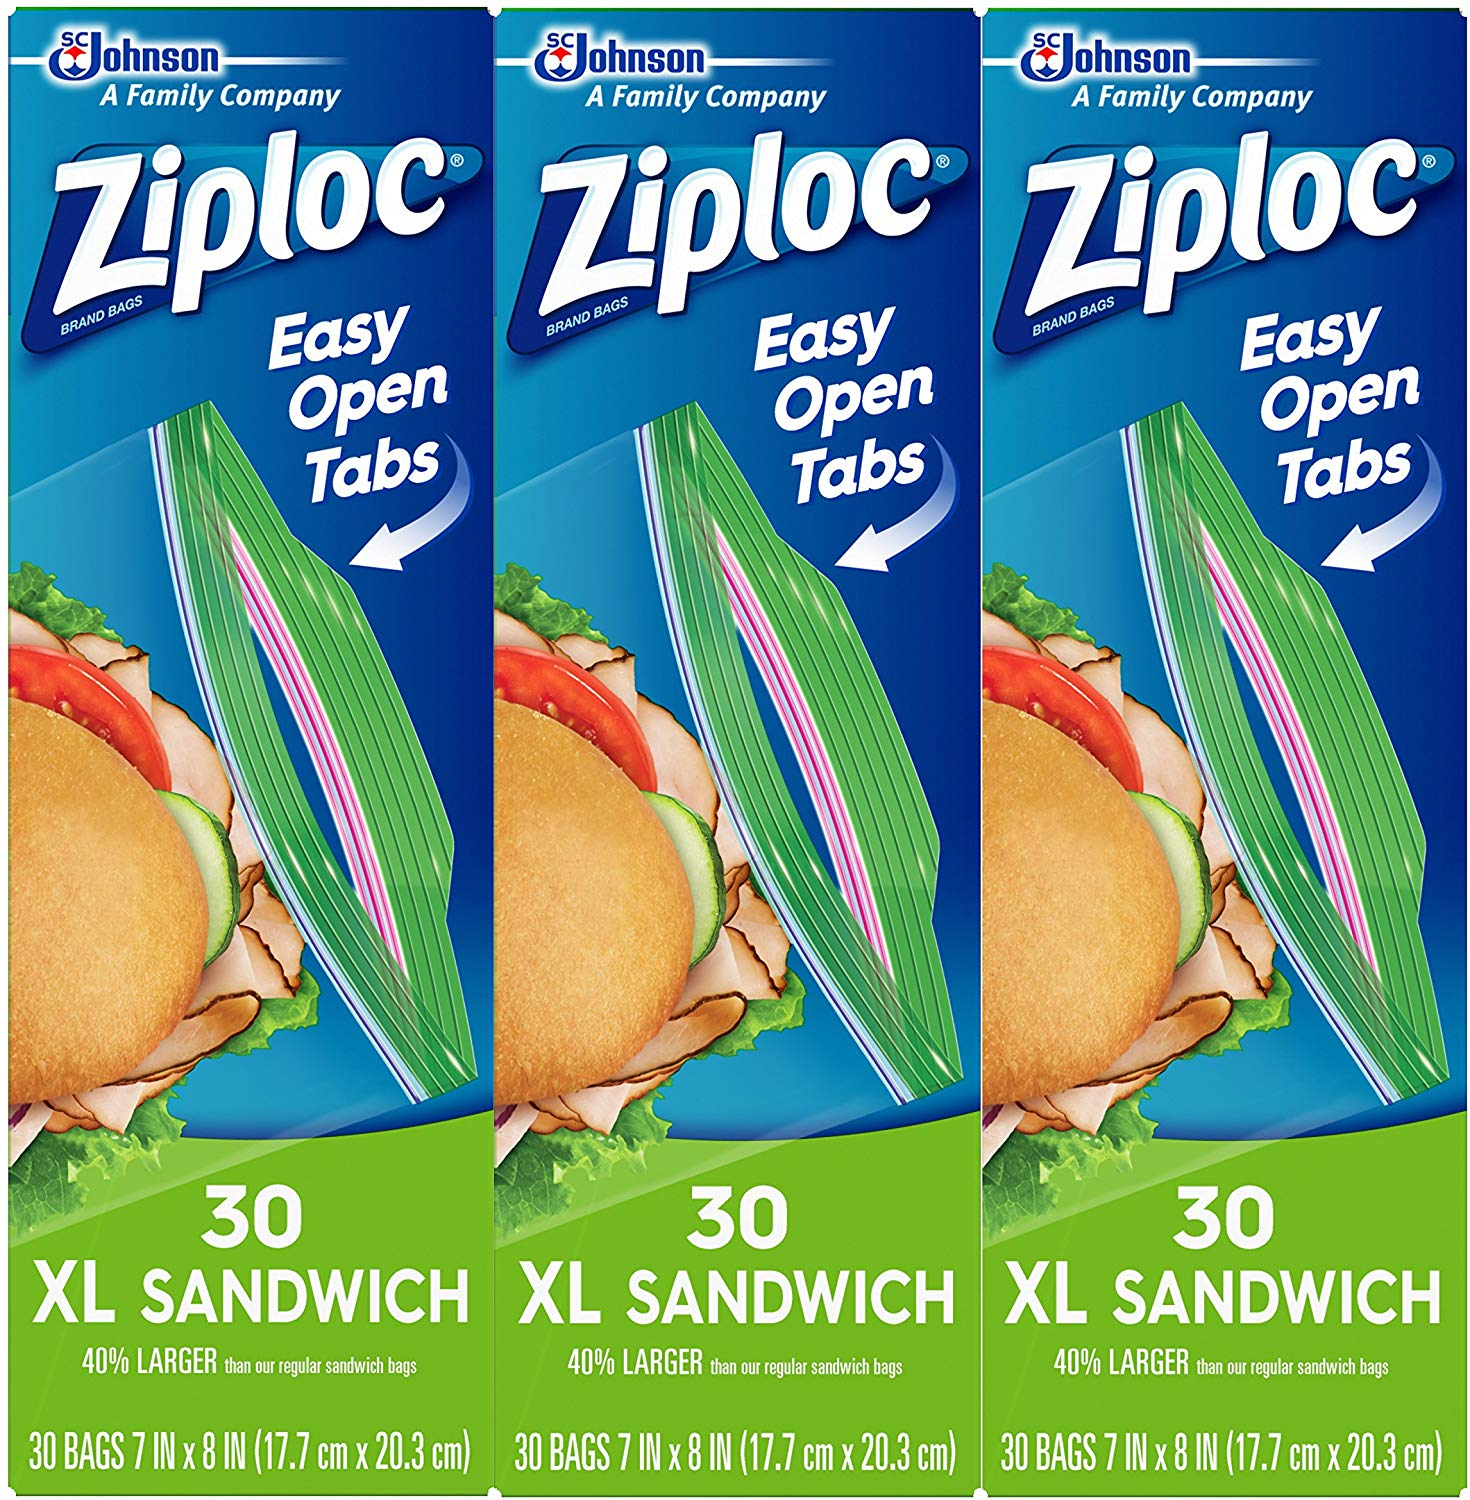 90 Ziploc Sandwich Bags only $3.85! (was $8.97)